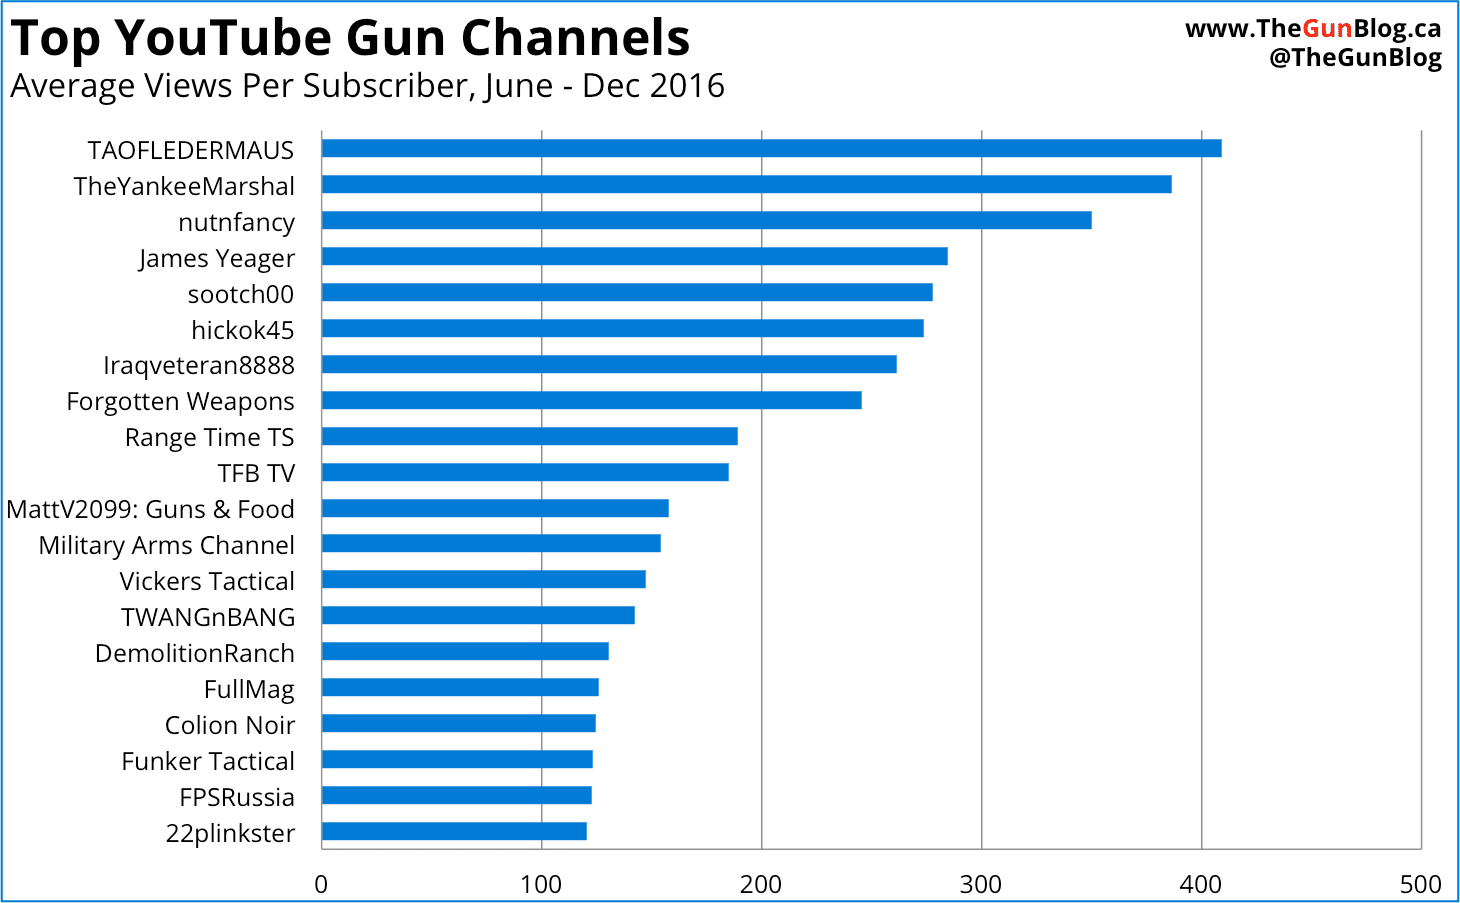 Top YouTube Gun Channels by Average Views Per Subscriber